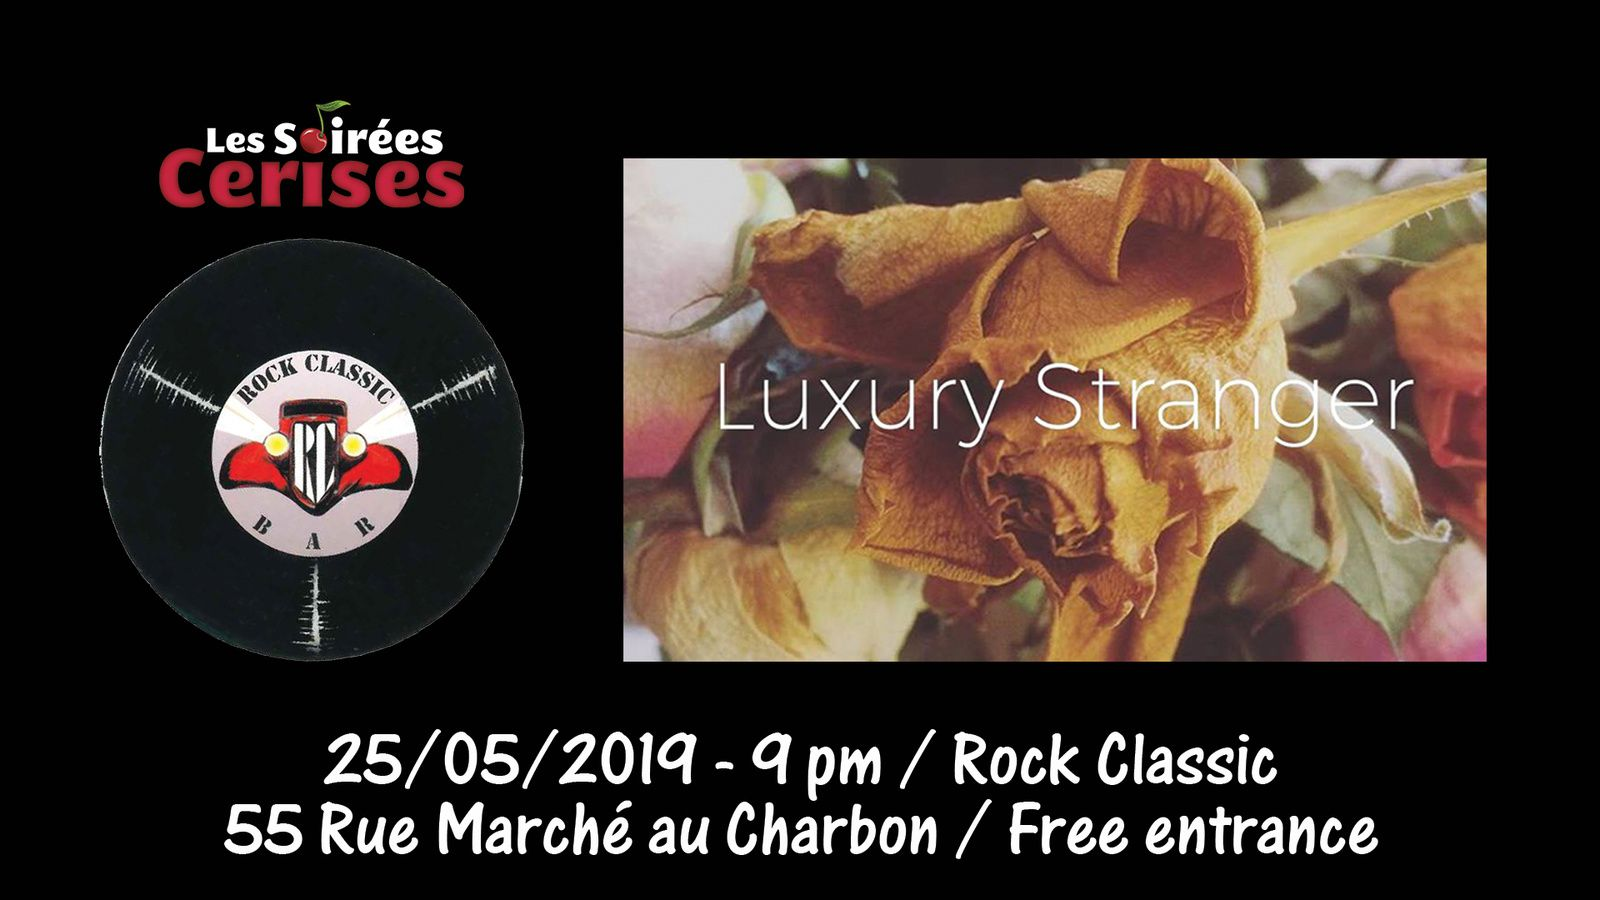 ▶ Luxury Stranger (Post-punk/Alternative Rock from UK) @ Rock Classic - 25/05/2019 - 21h00 - Entrée gratuite !